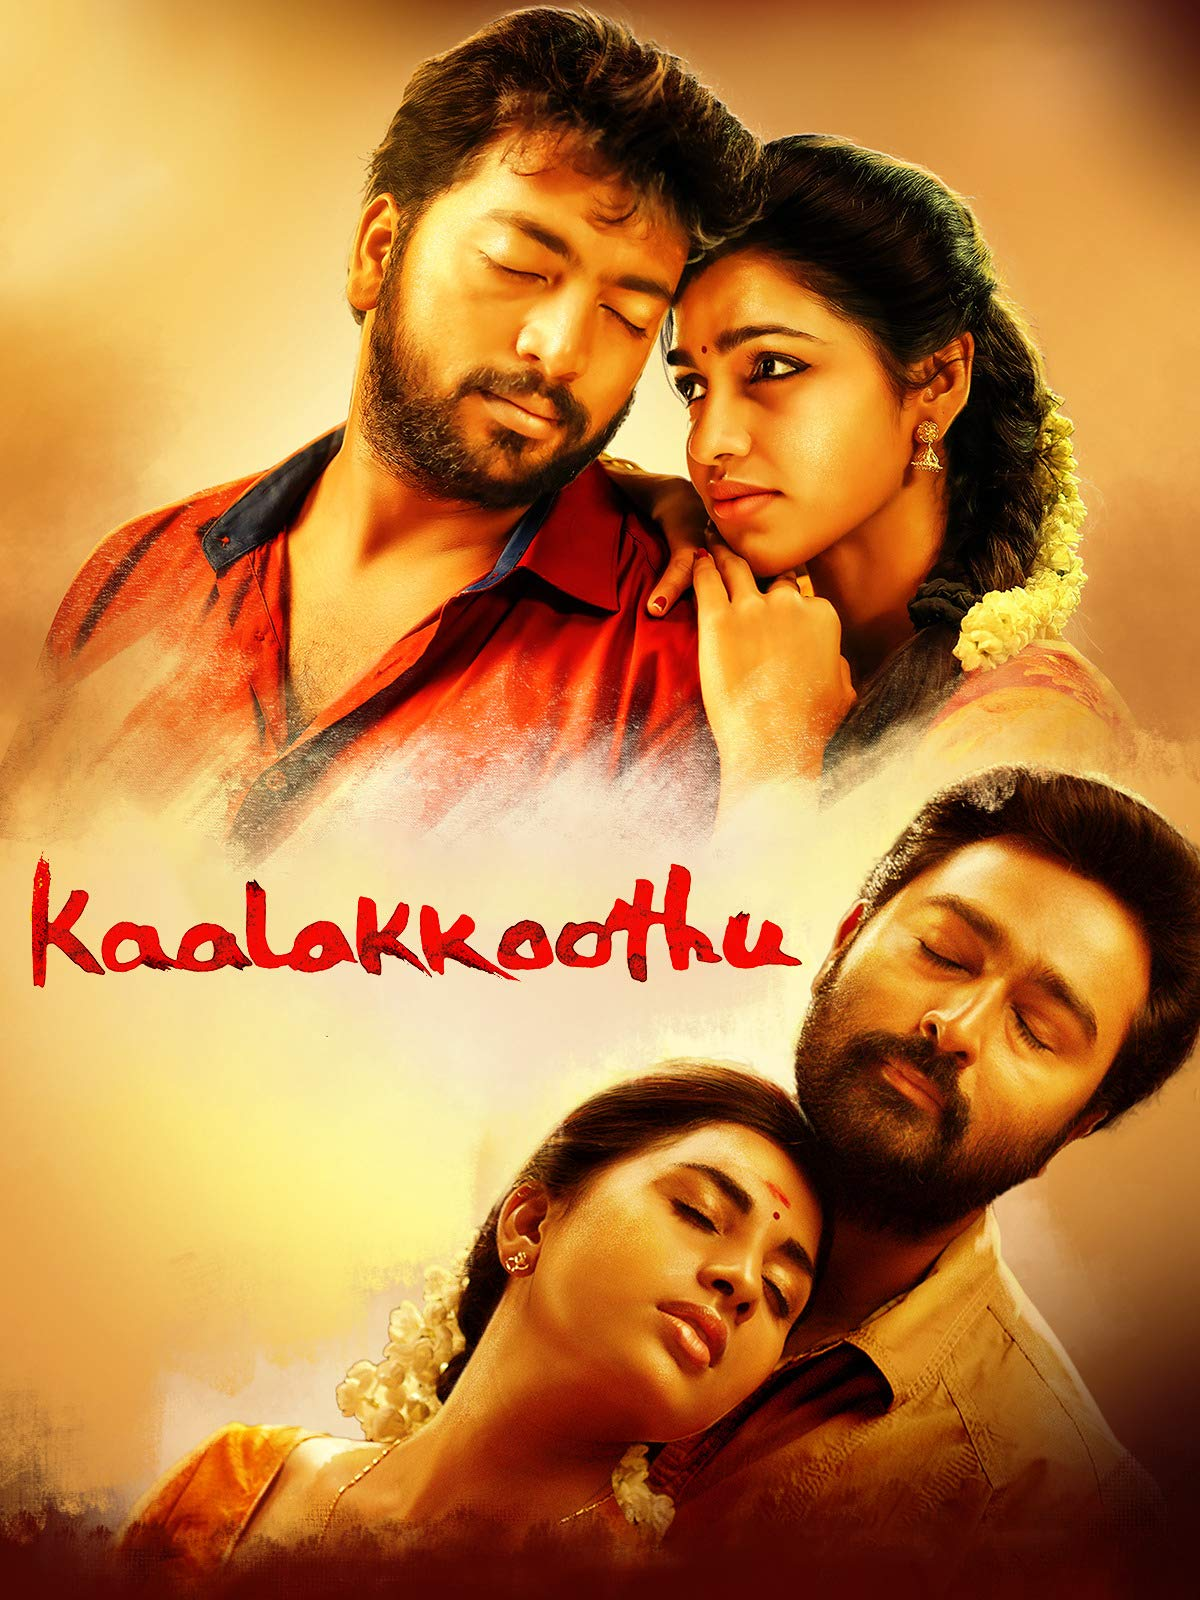 Dosti No.1 (Kaala Koothu) 2020 Hindi Dubbed 1080p HDRip 1.4GB Download